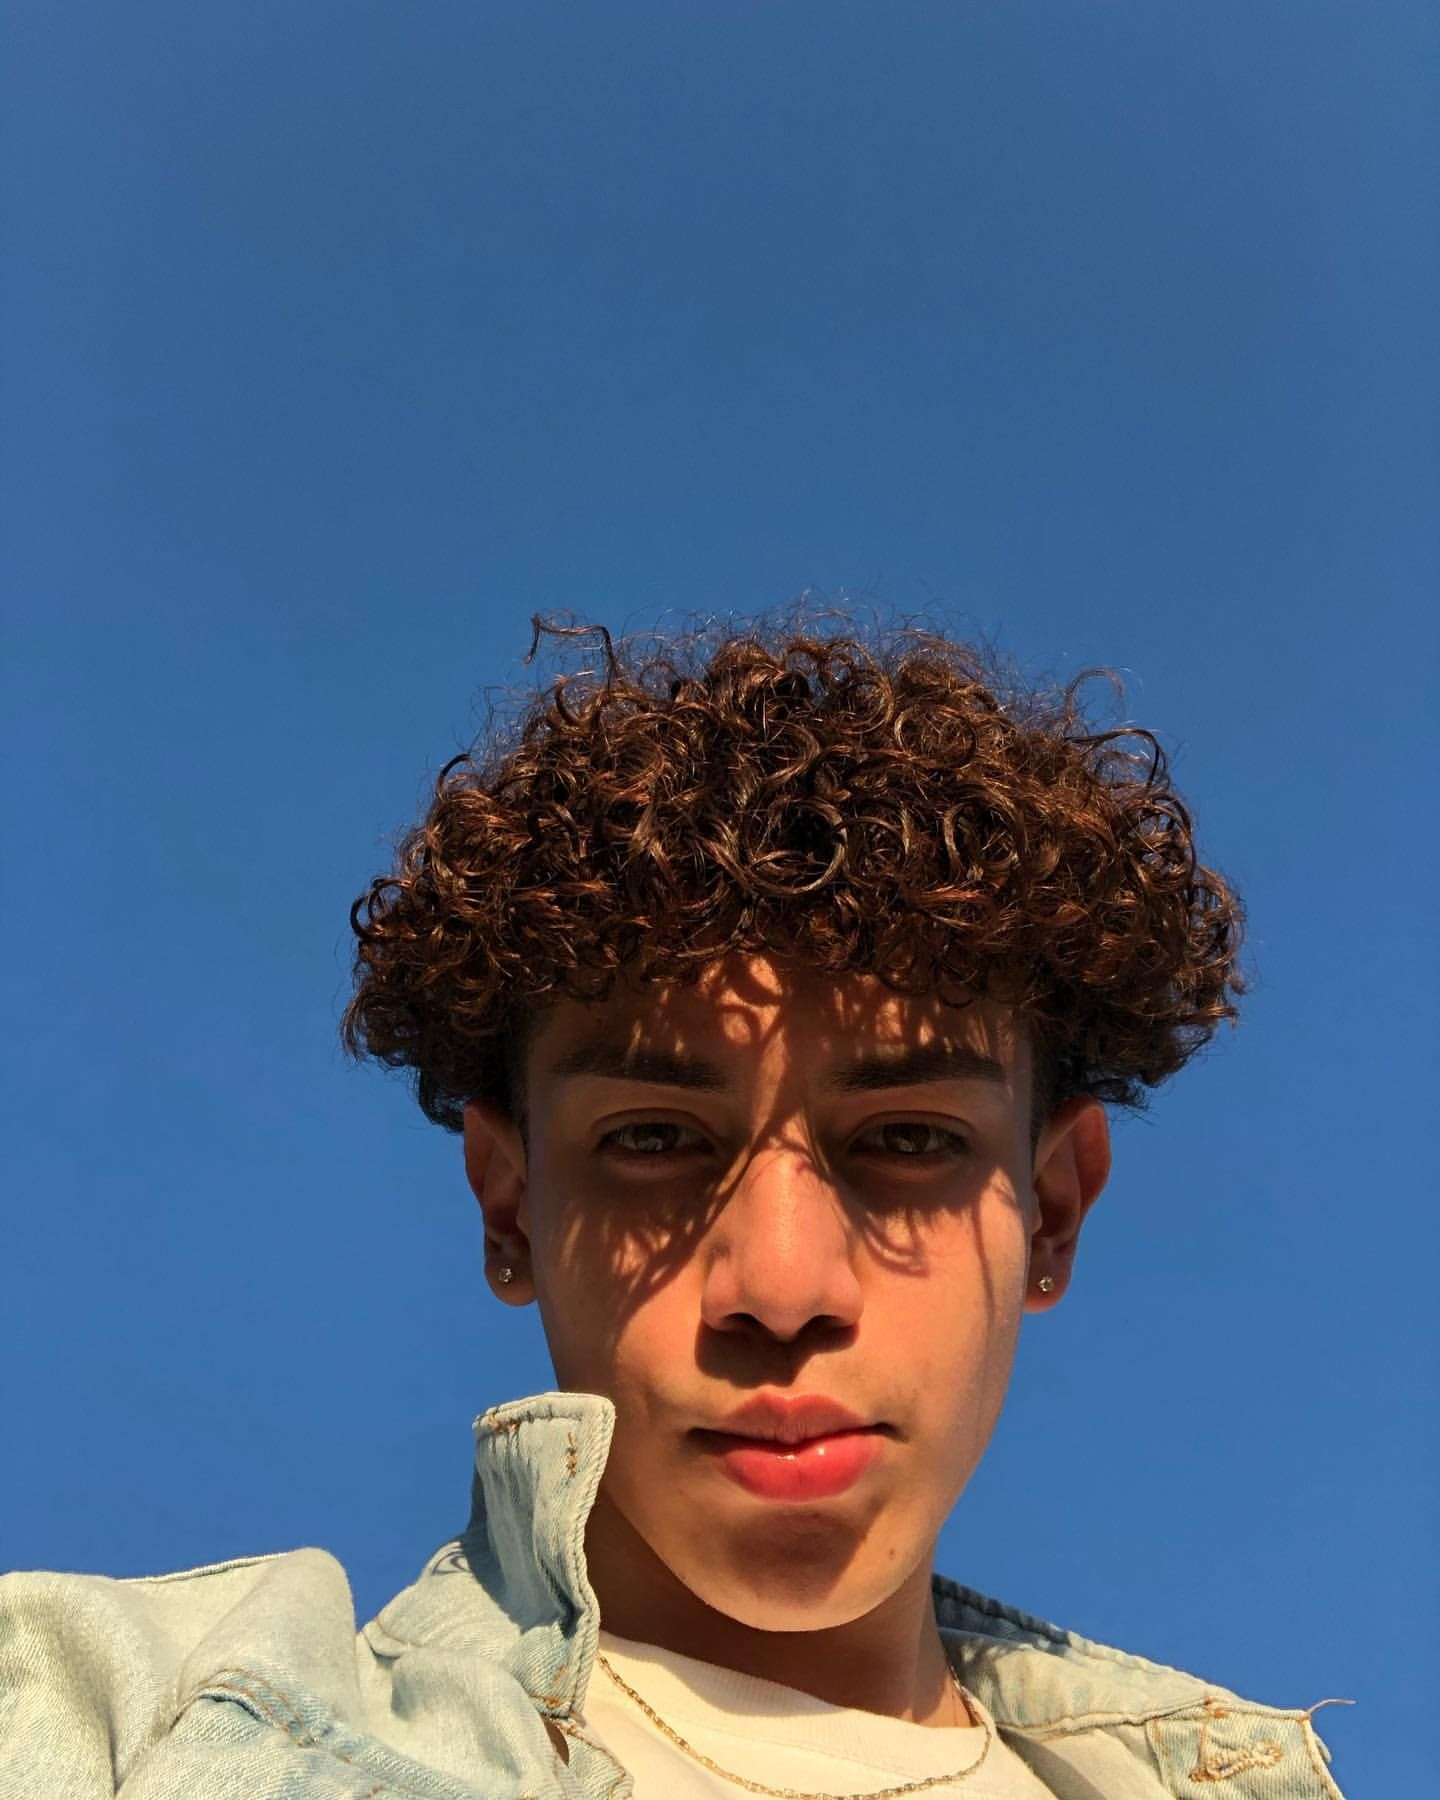 Julian Barboza New Favorite Shirts Stalkhub In 2020 Boys With Curly Hair Cute Mexican Boys Beauty Tips For Glowing Skin